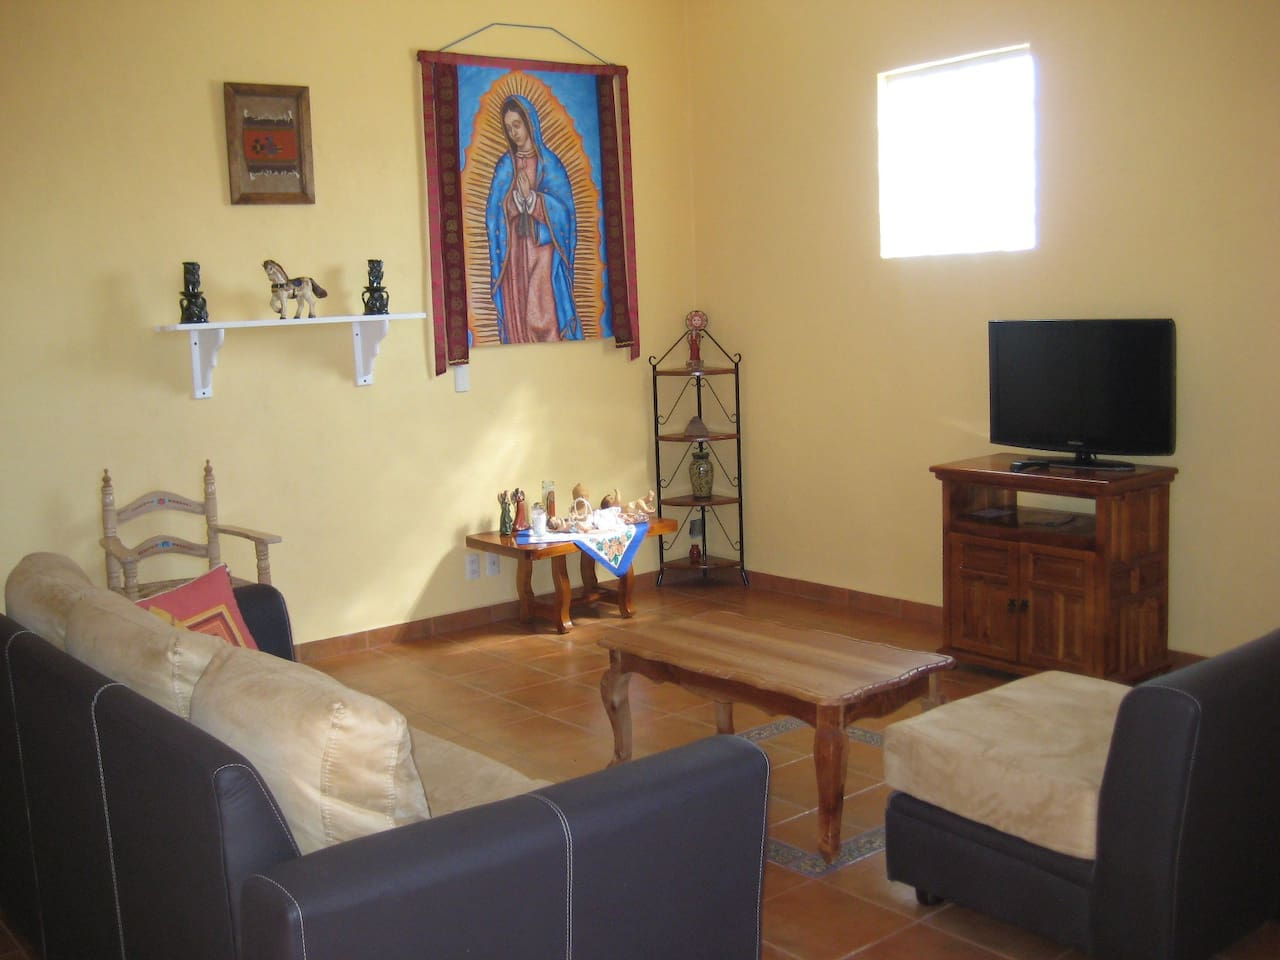 The living room with original painting of Guadalupe/Tonantzin